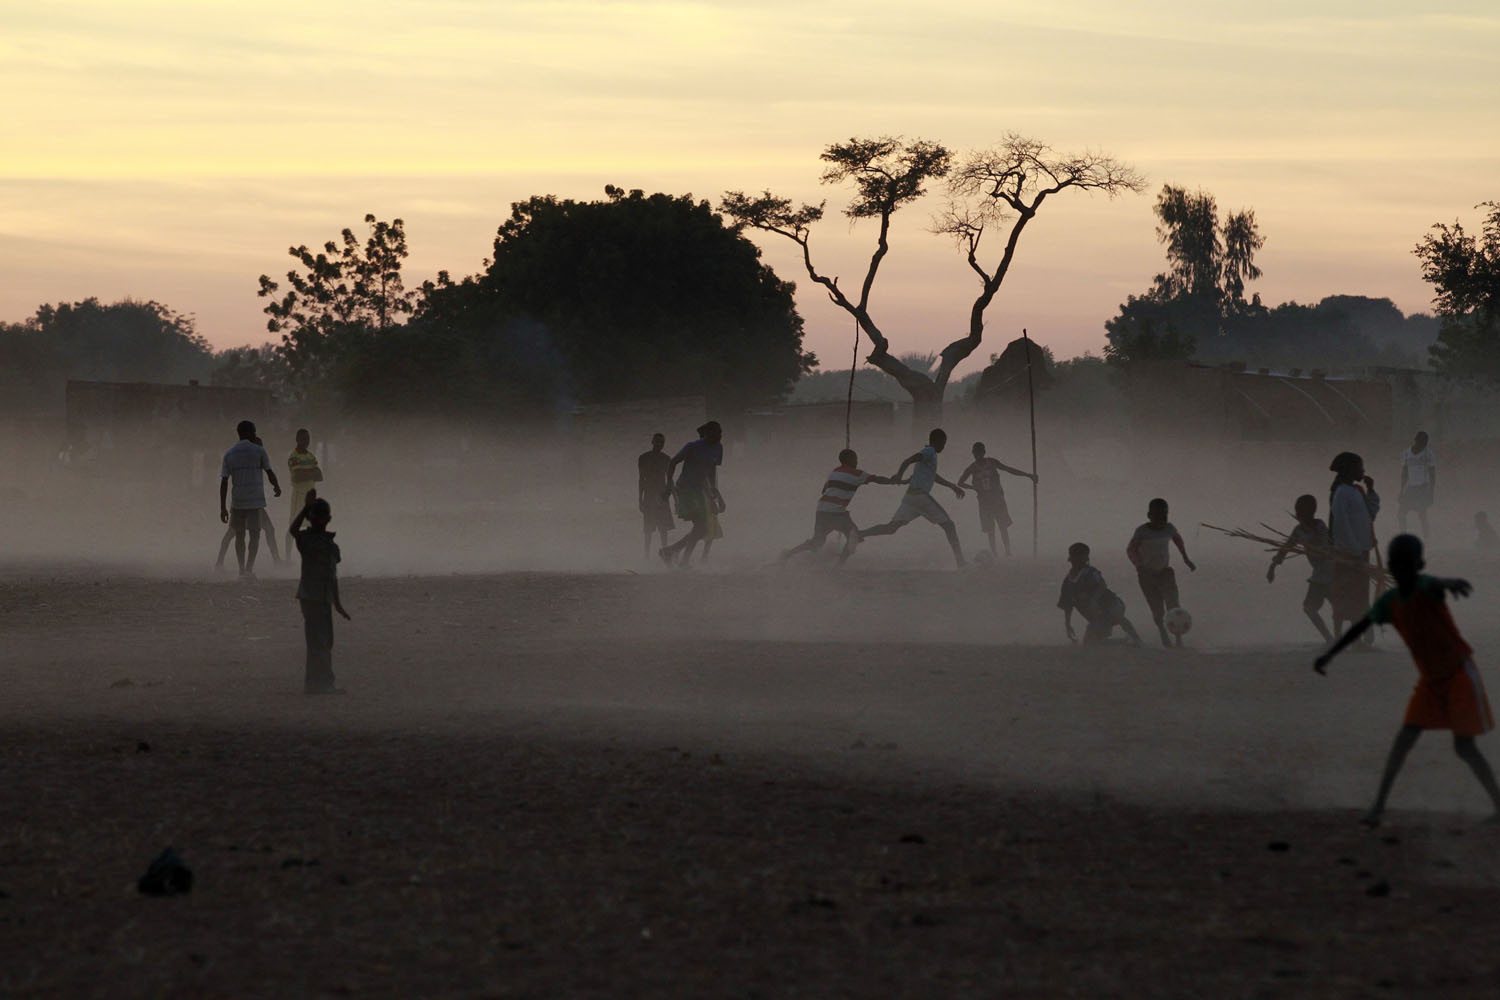 Children and adults alike play soccer on a dusty field in Segou, central Mali, Jan. 21, 2013.